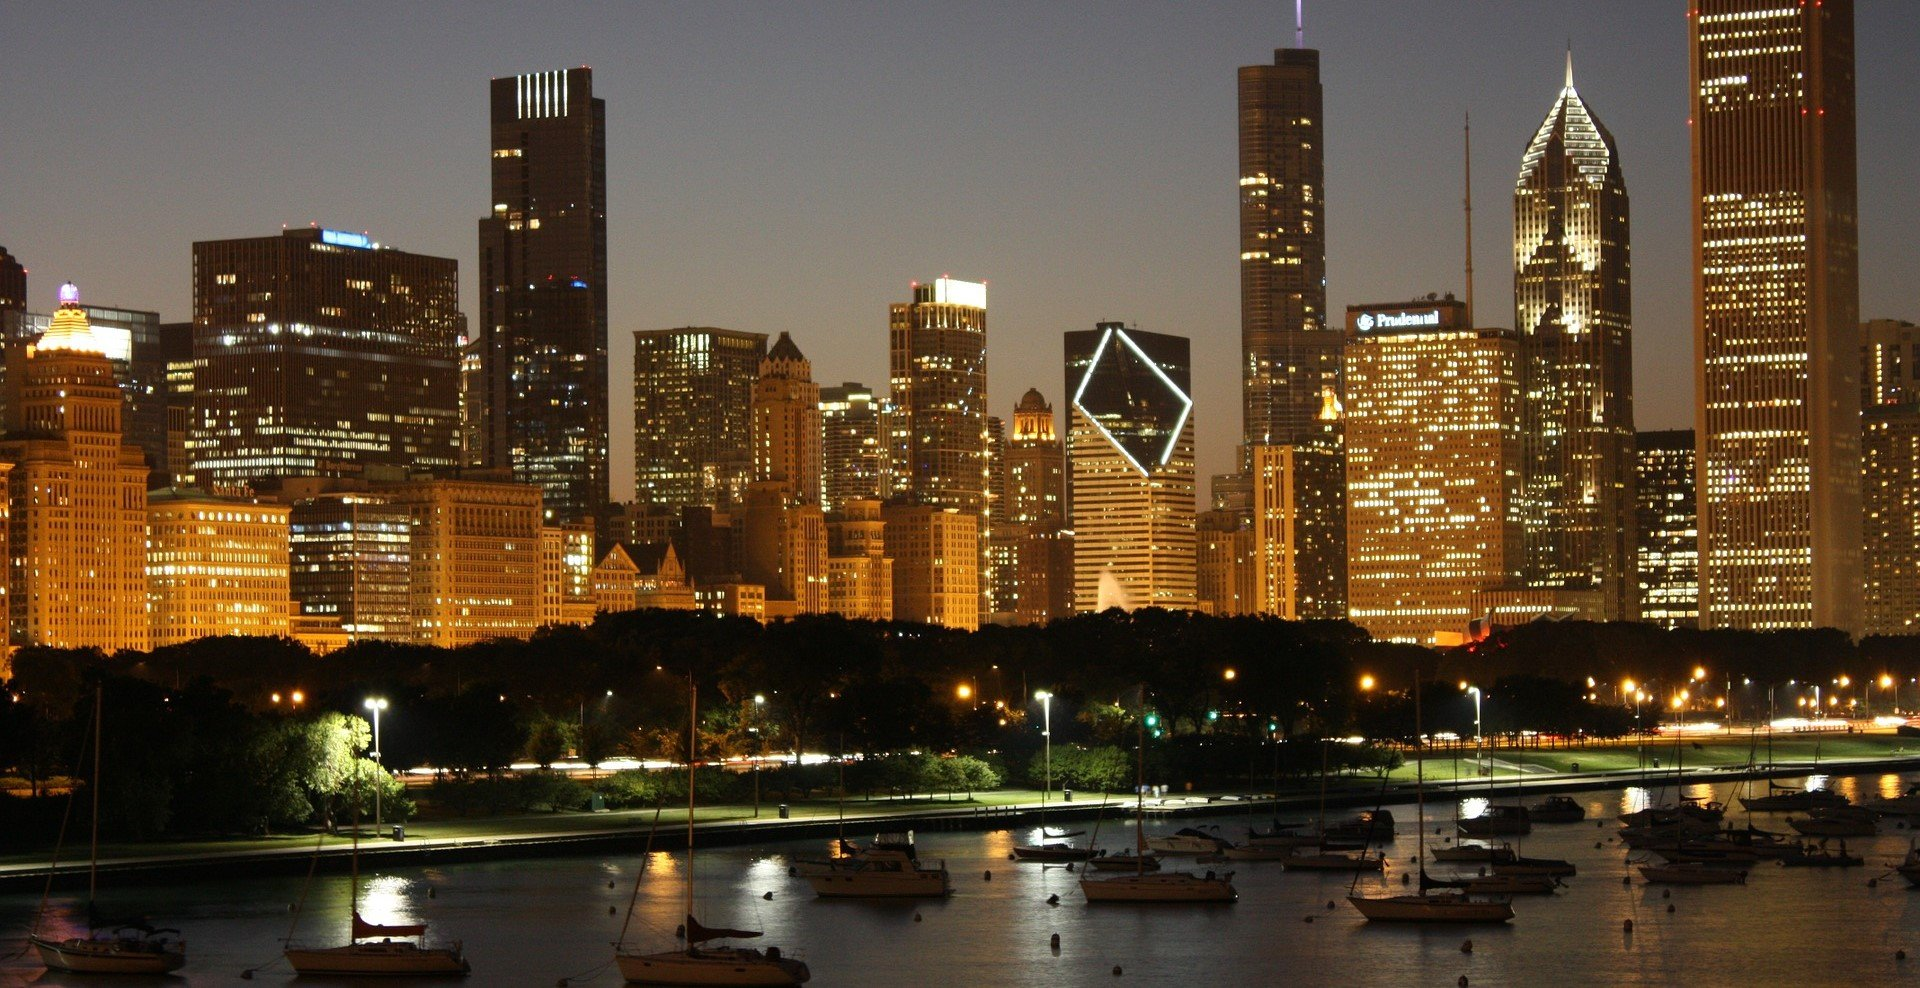 A view of Chicago Skyline at Night - VeteranCarDonations.org